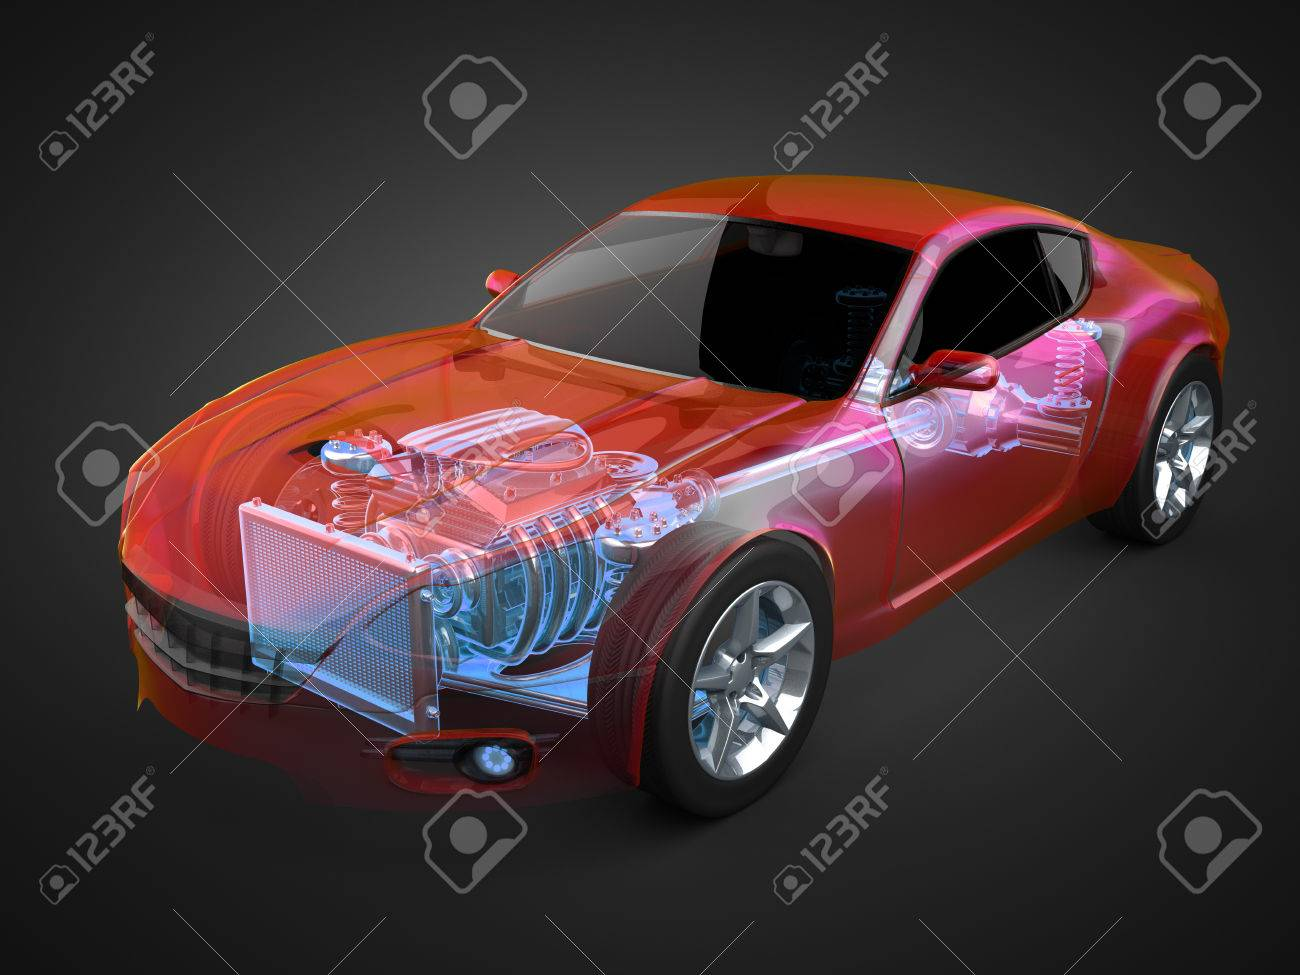 transparent car concept with visible engine and transmission - 33012150